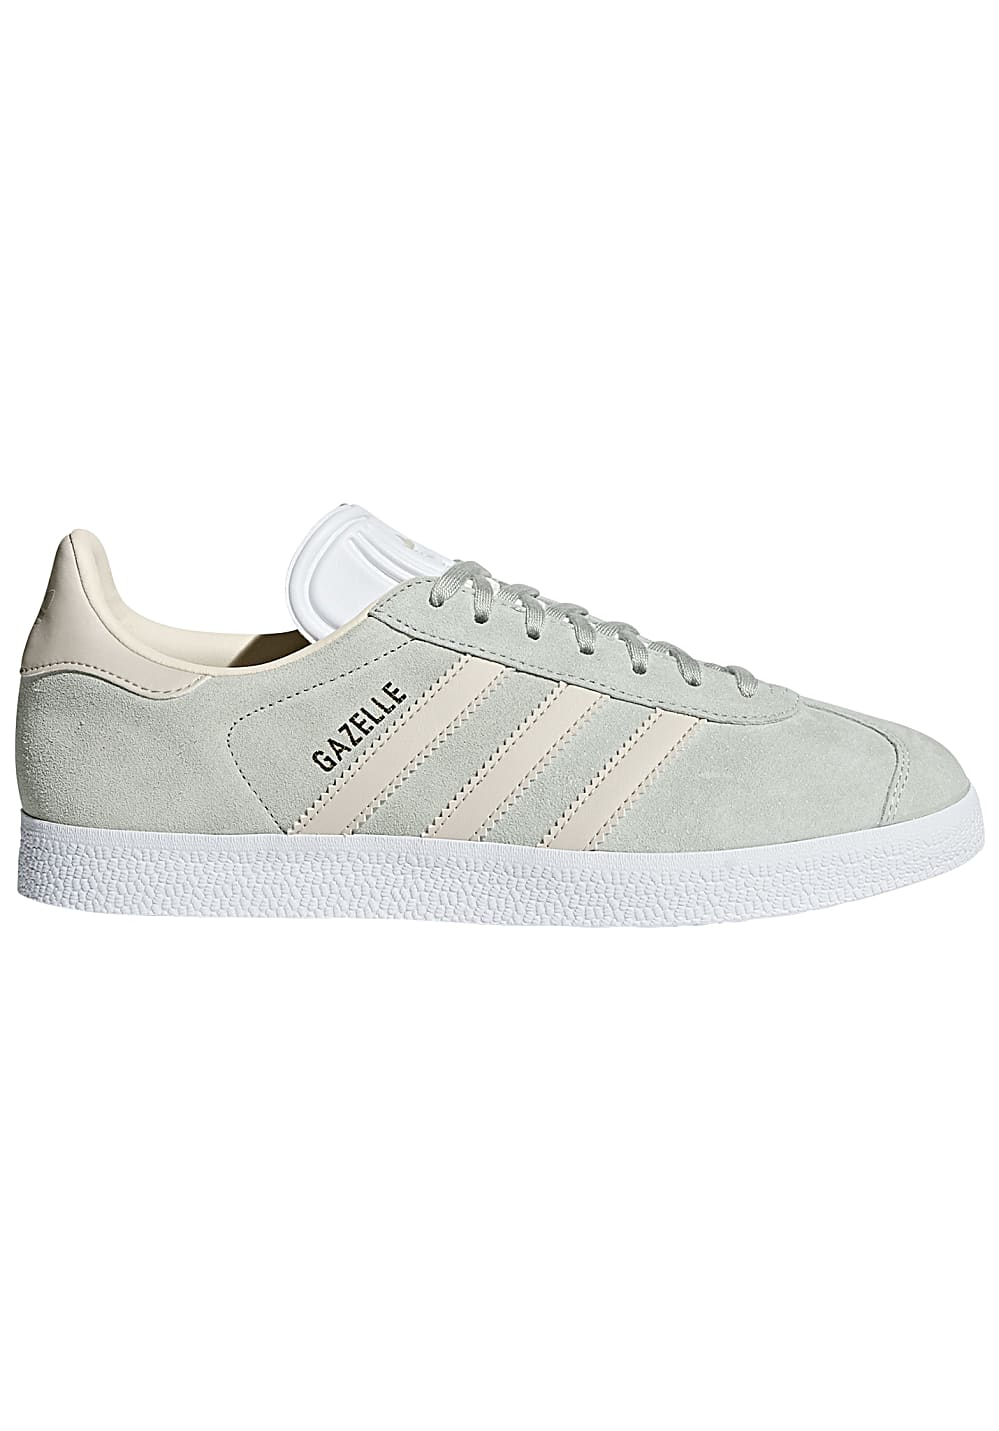 ADIDAS ORIGINALS Gazelle Baskets pour Femme Gris